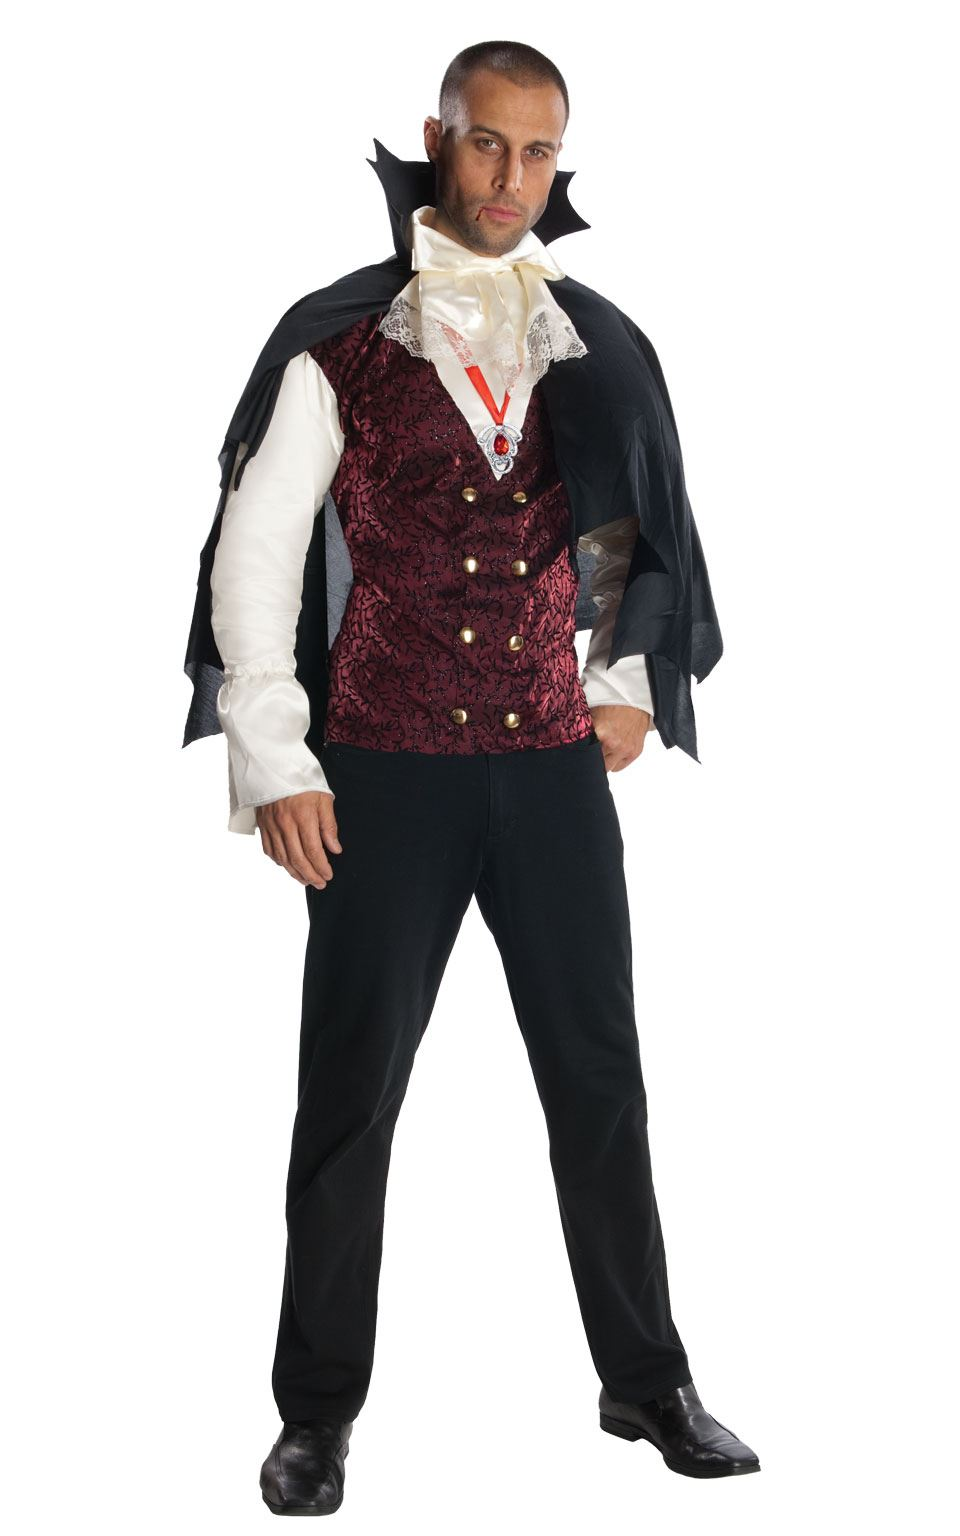 81f468dbe64 Details about Mens Vampire Costume Halloween Count Dracula Fancy Dress  Adult Outfit